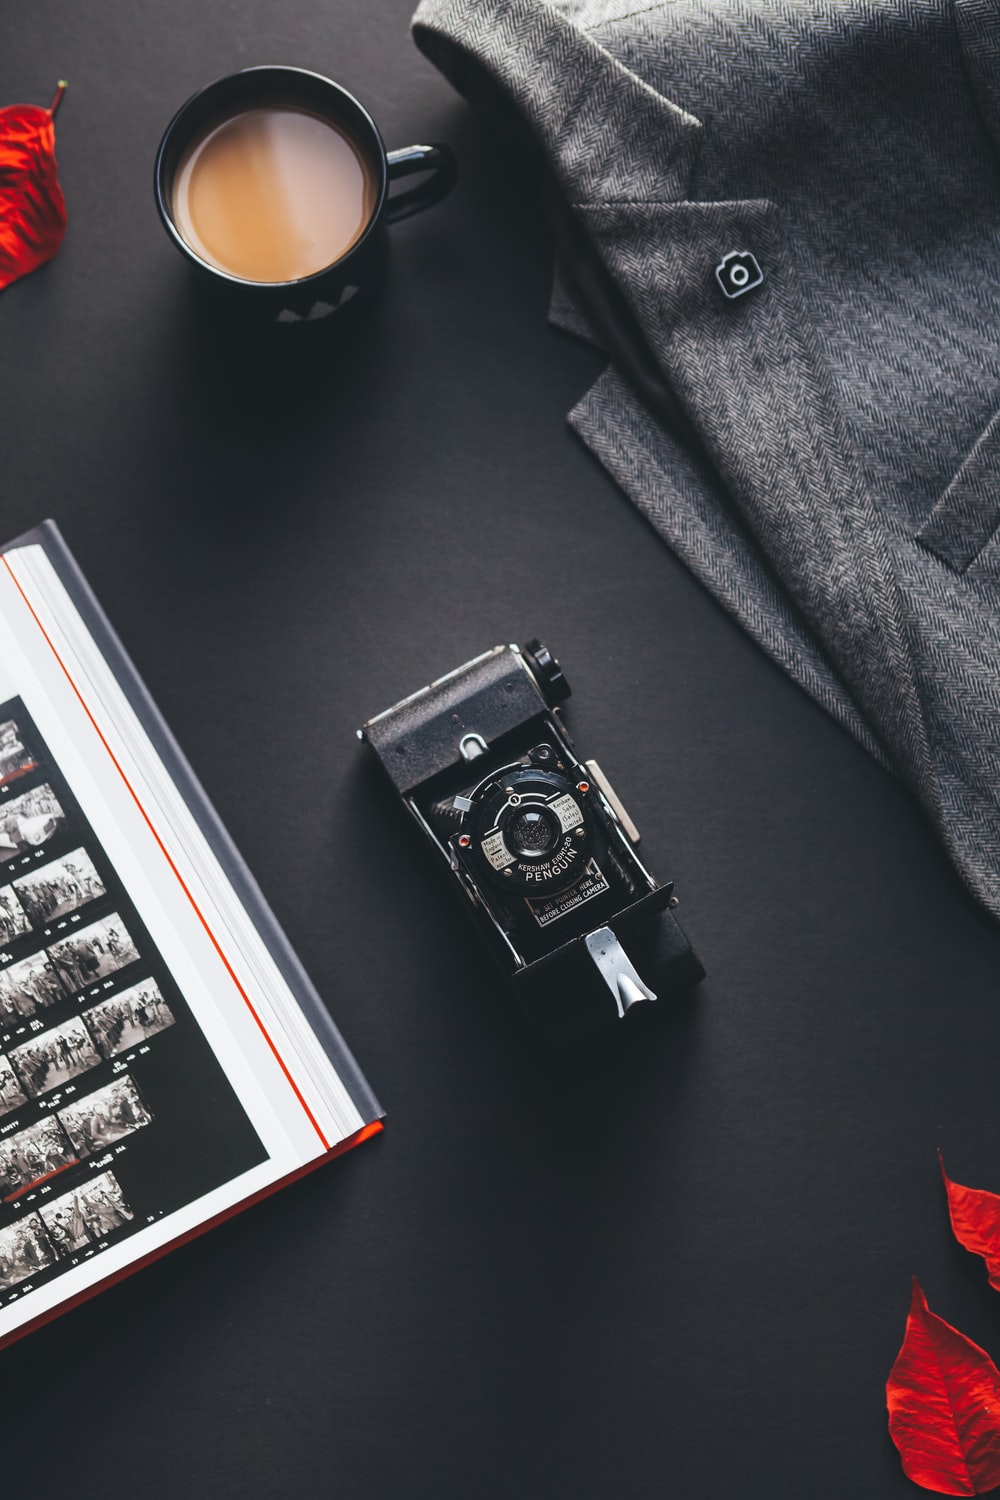 black film camera near gray suit jacket